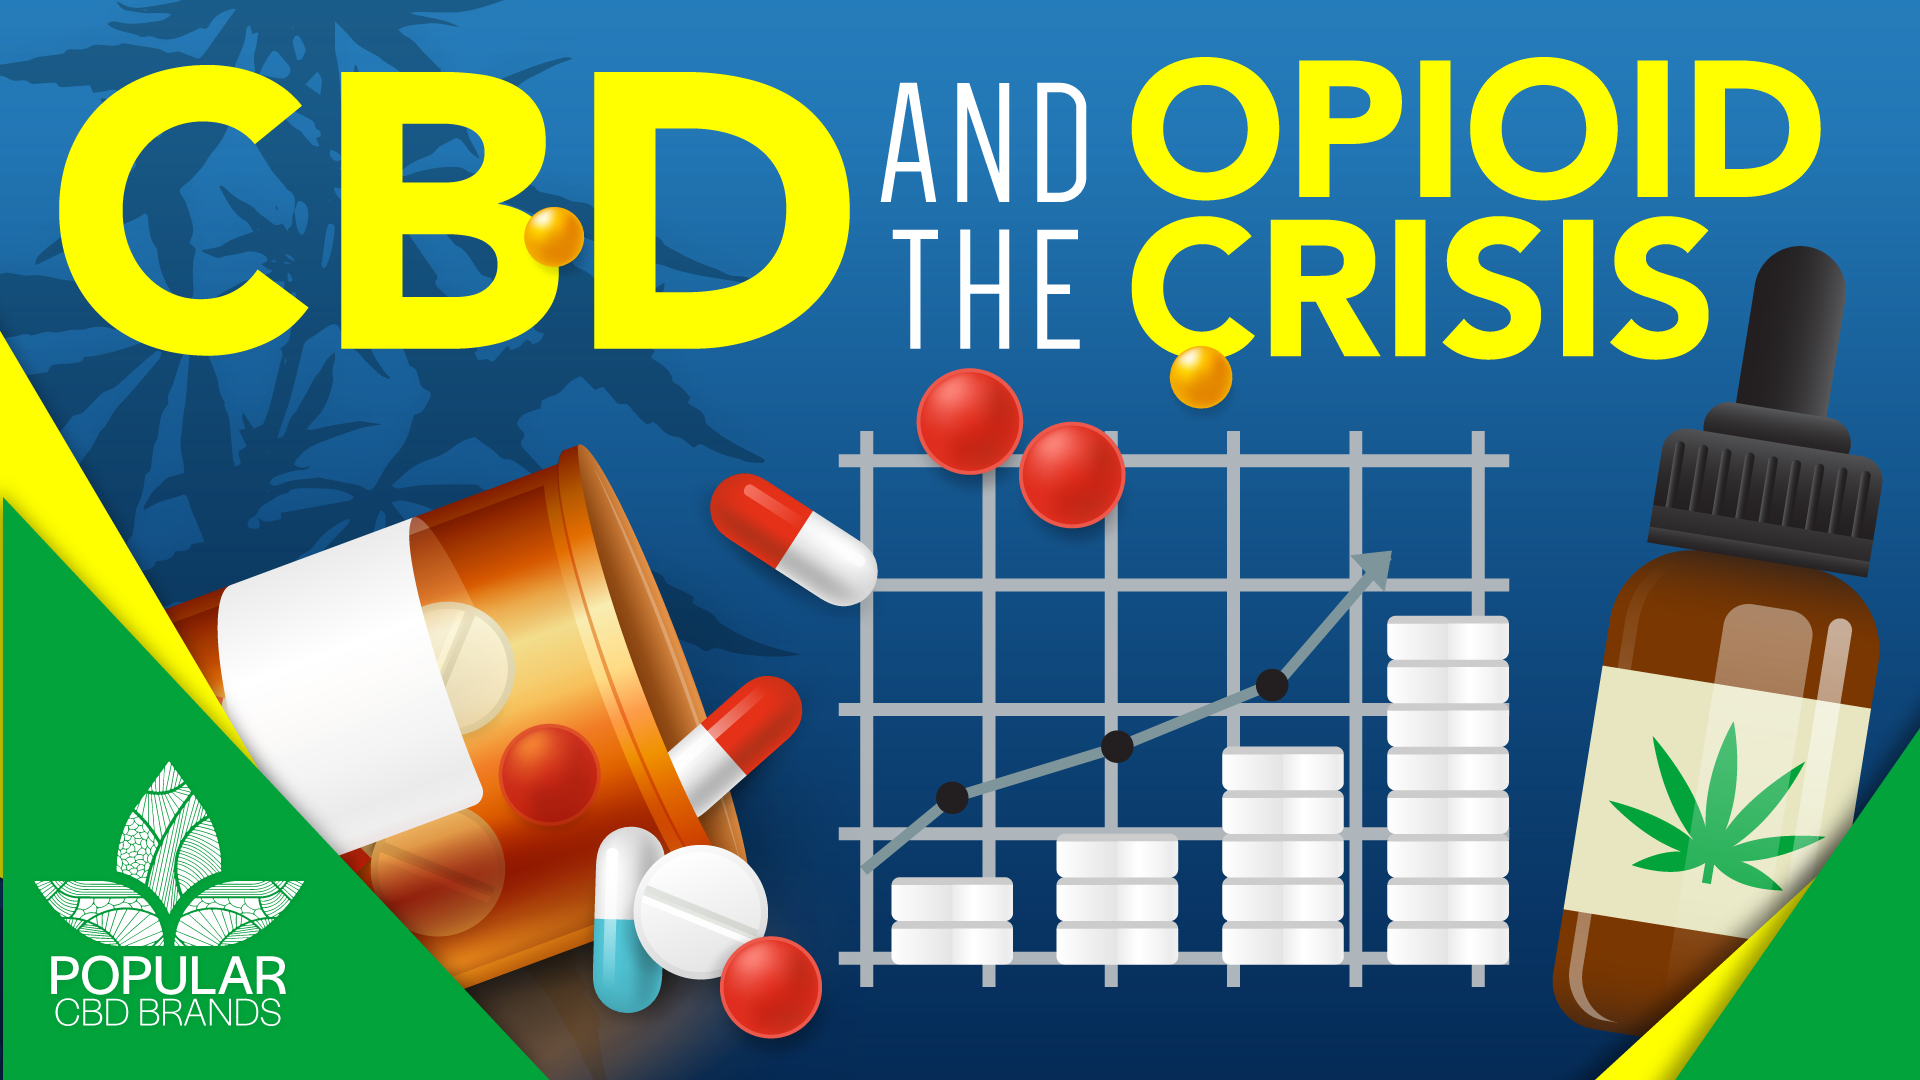 Opiod Crisis and CBD